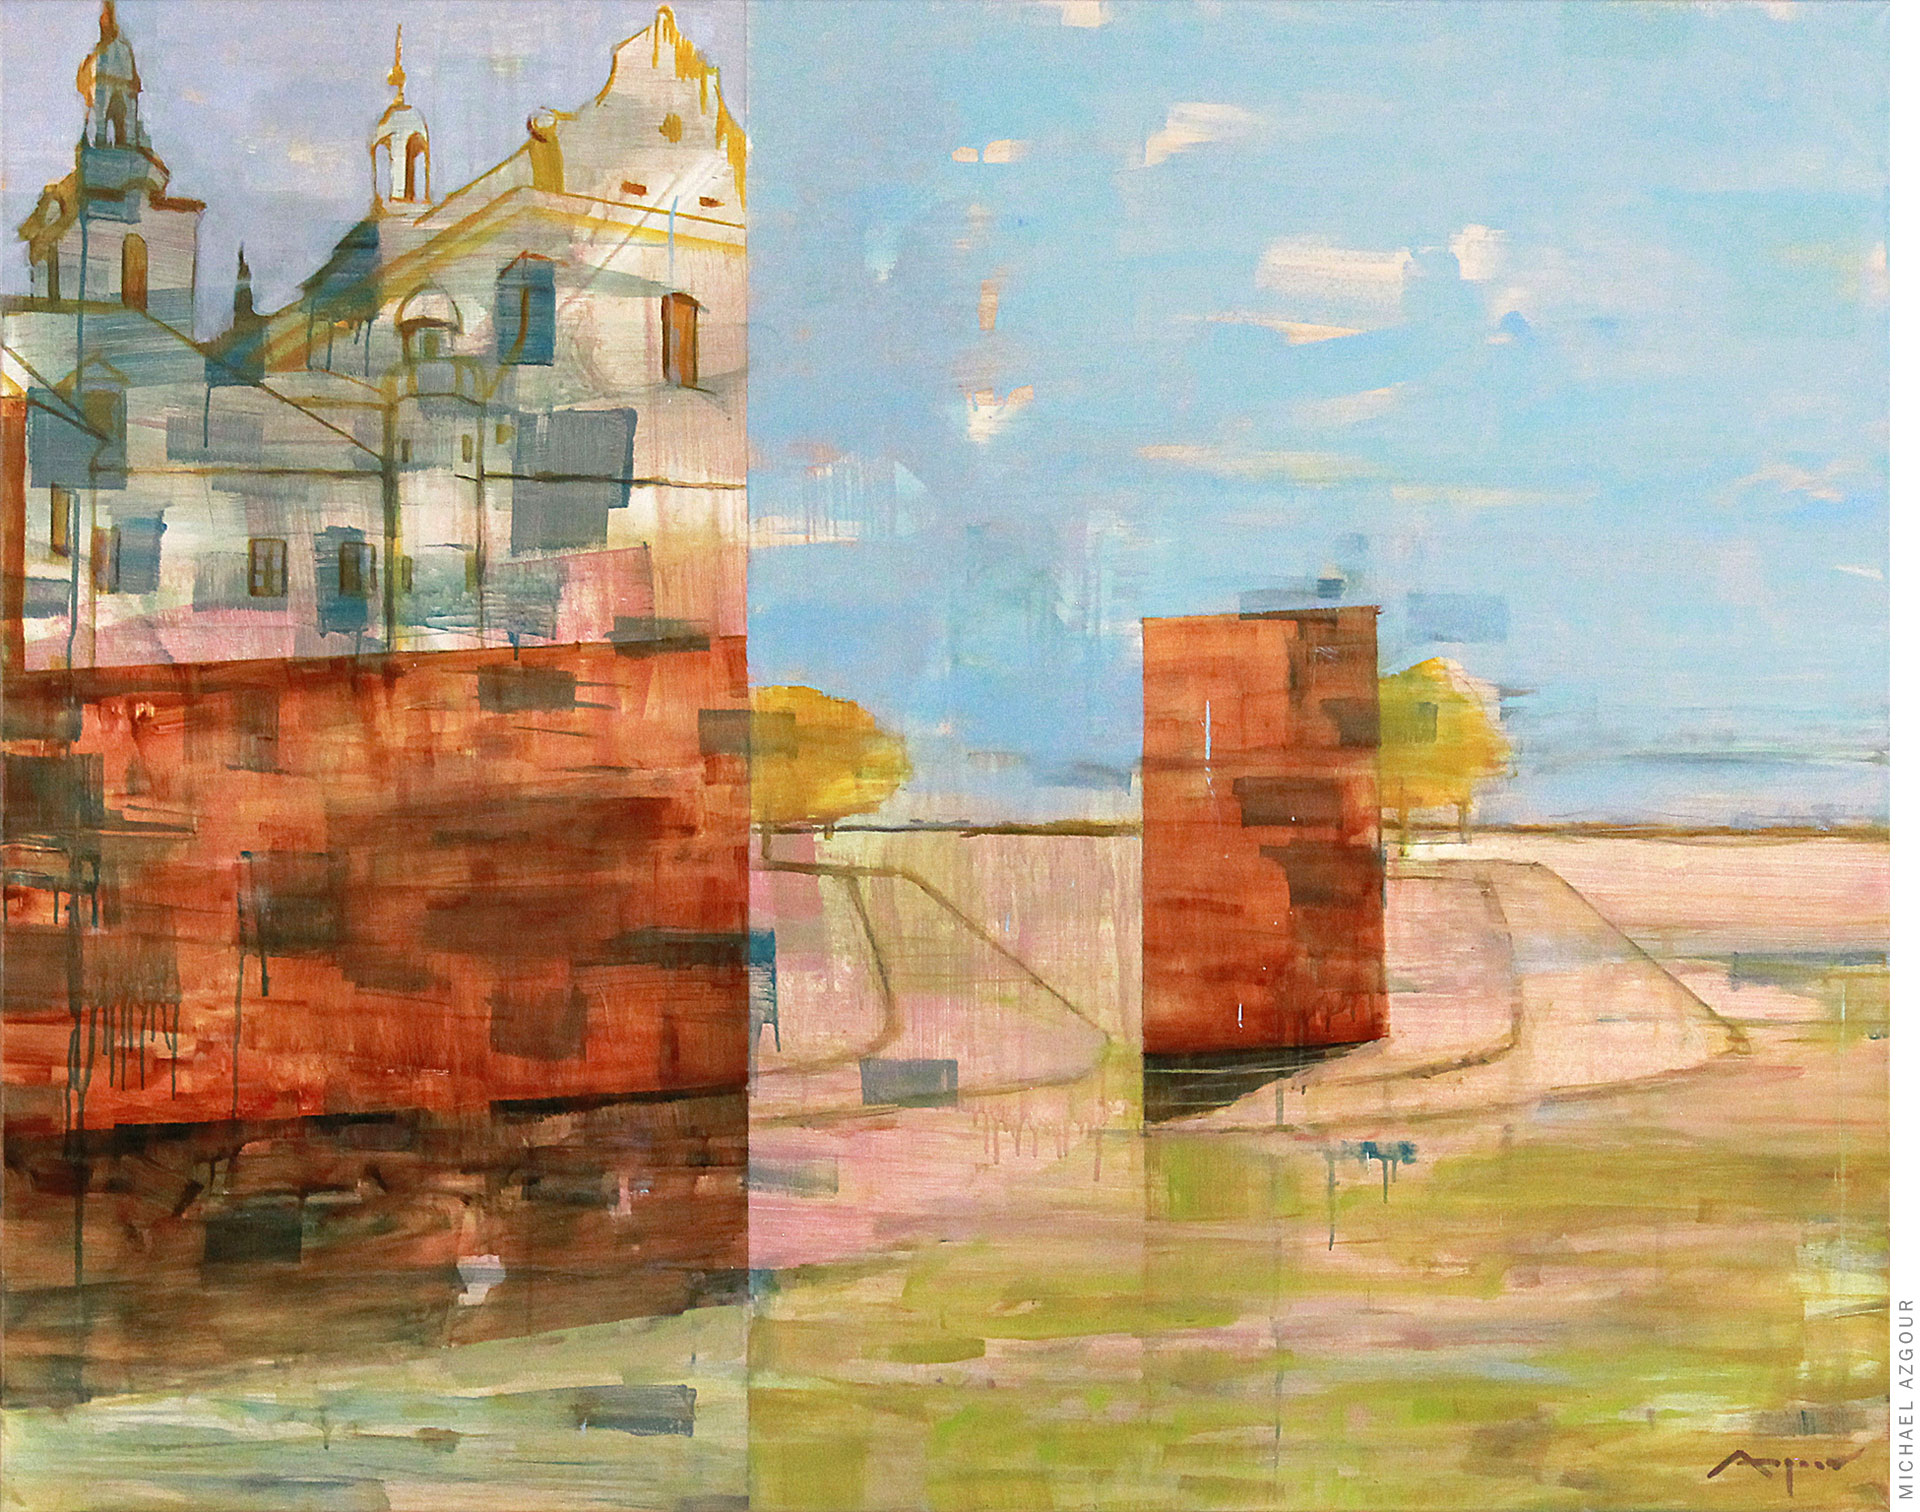 Church on the Rock, Fragmented